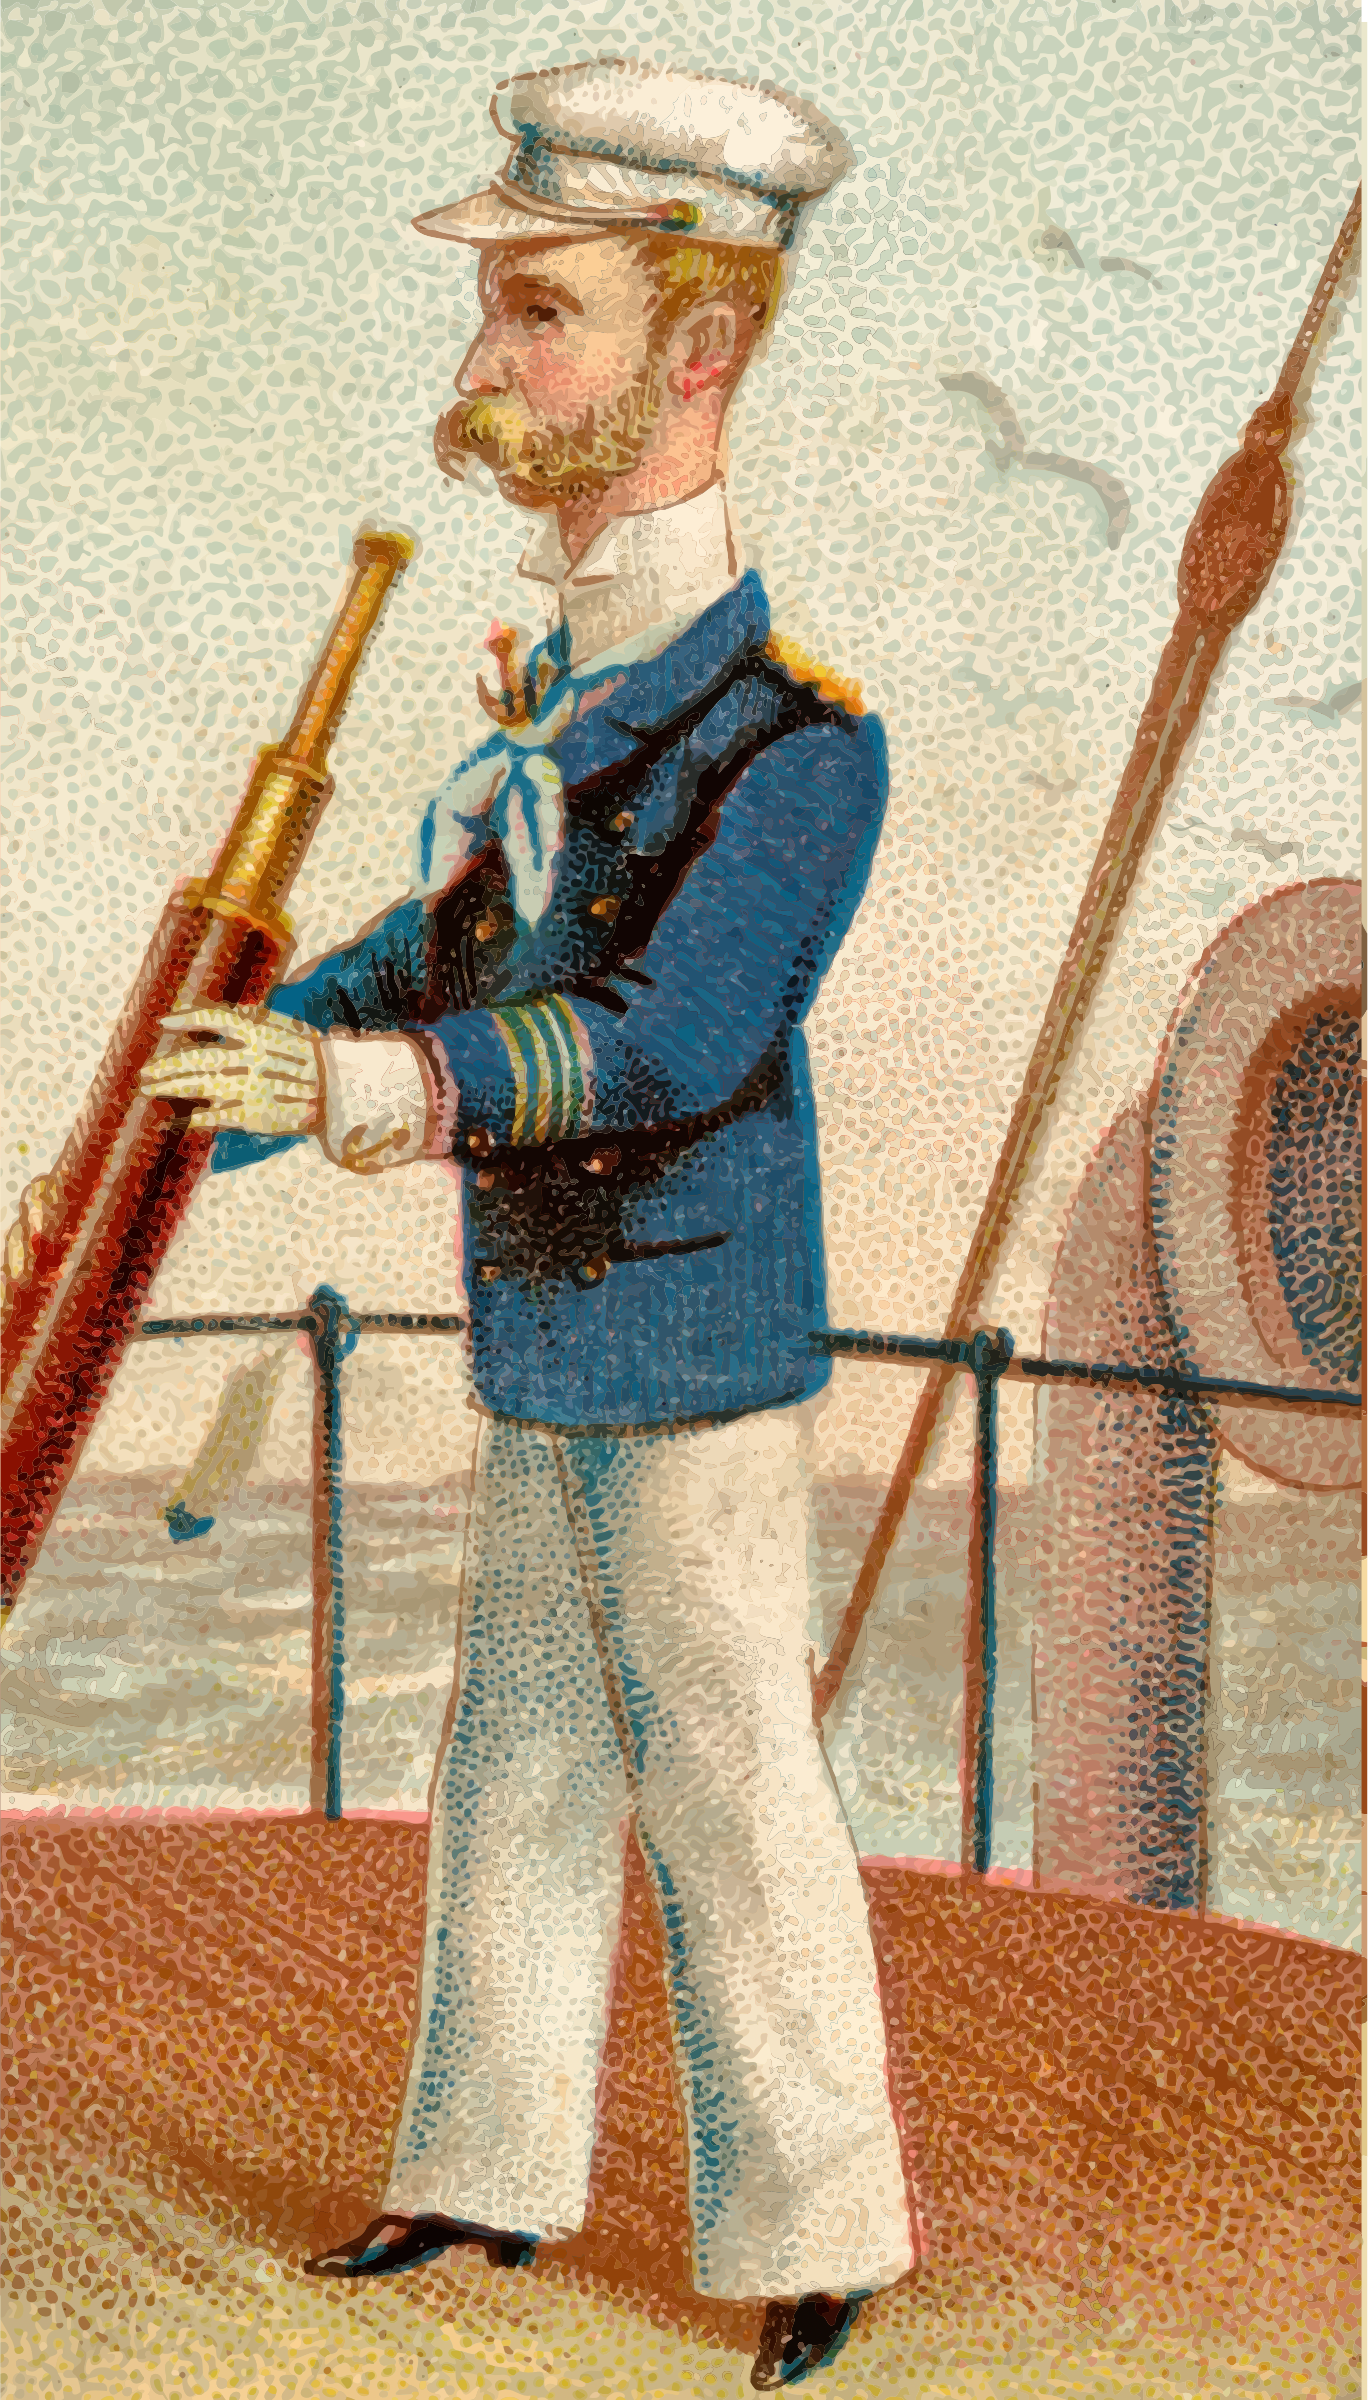 Cigarette card - Yachting by Firkin